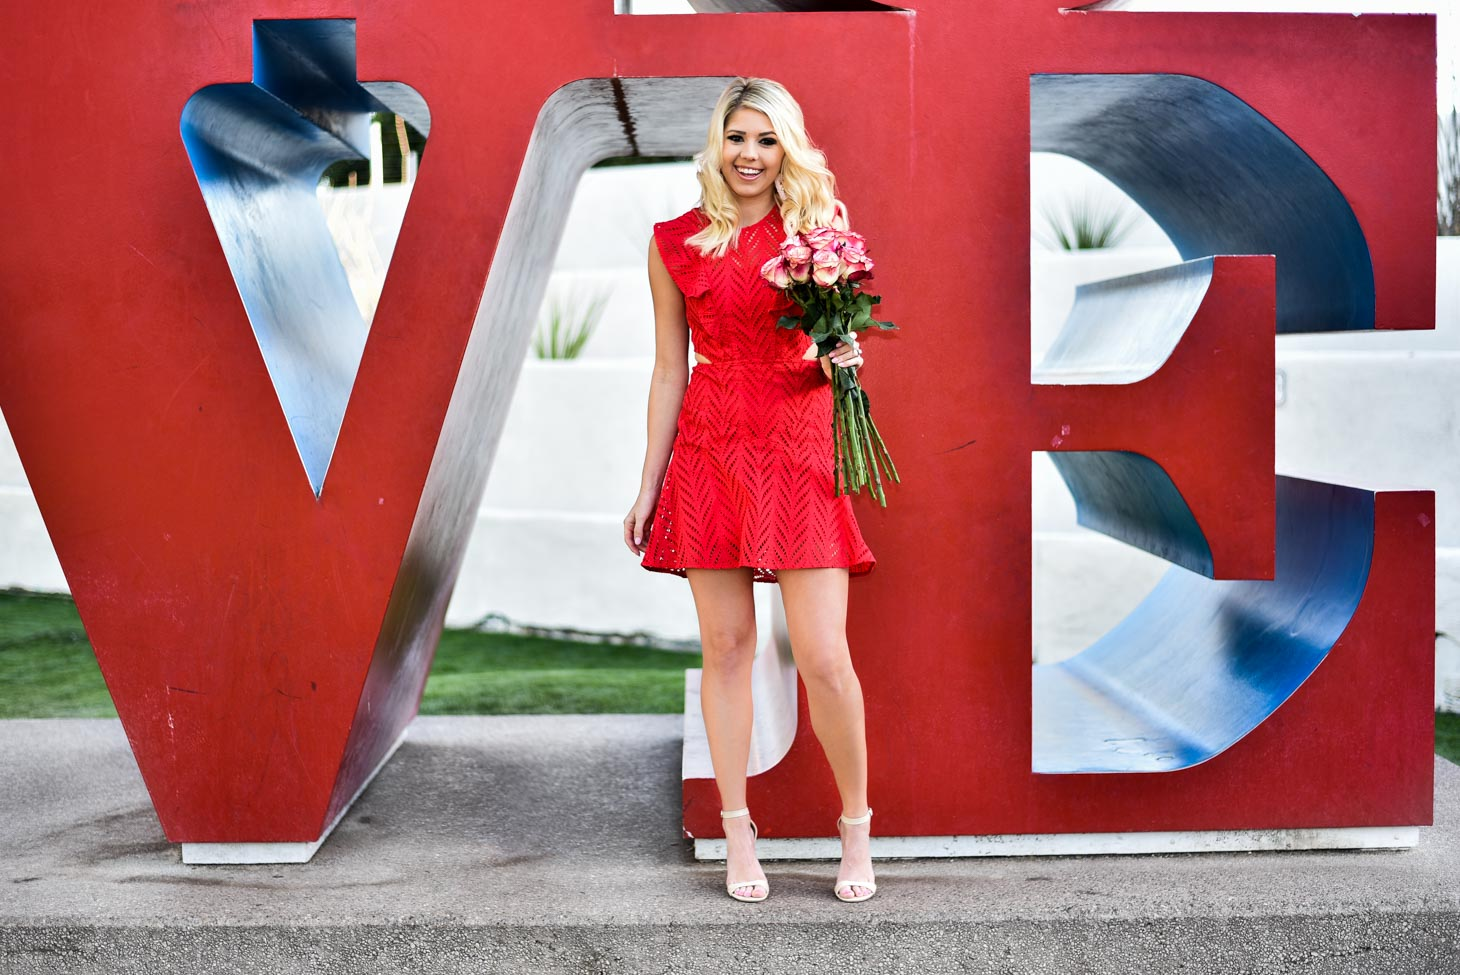 Erin Elizabeth of Wink and a Twirl in Red Dress For Valentine's Day